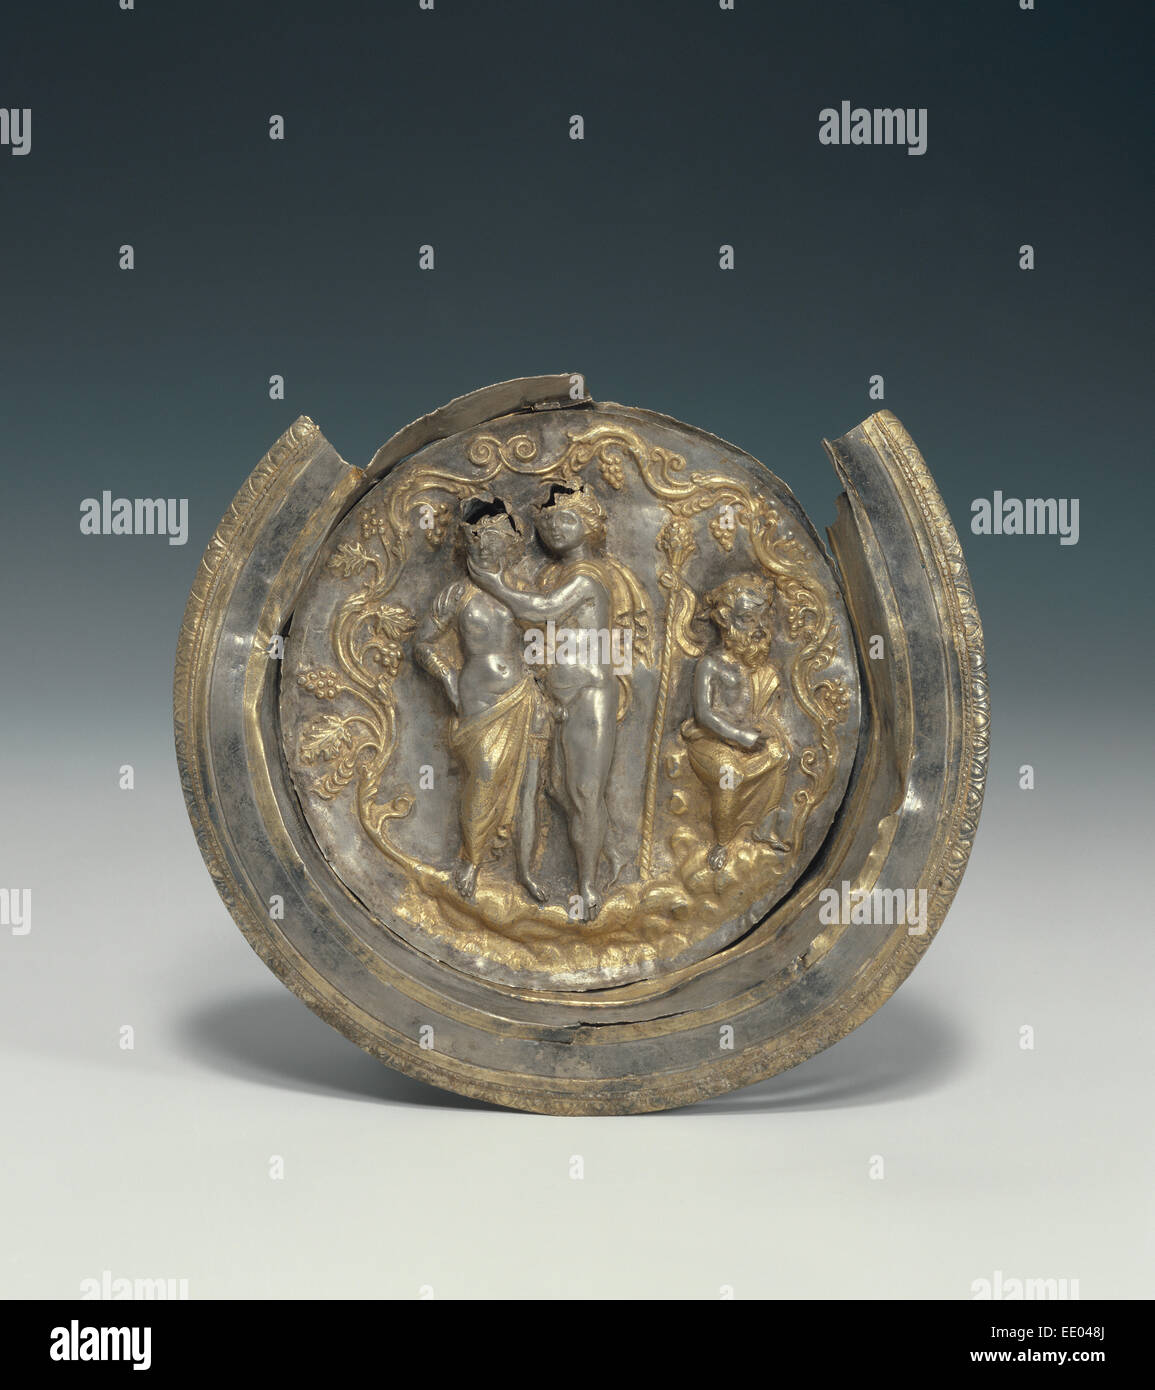 Bowl with a Medallion Depicting Dionysos and Ariadne; Unknown; Asia Minor; late 2nd century B.C.; Silver with gilding - Stock Image